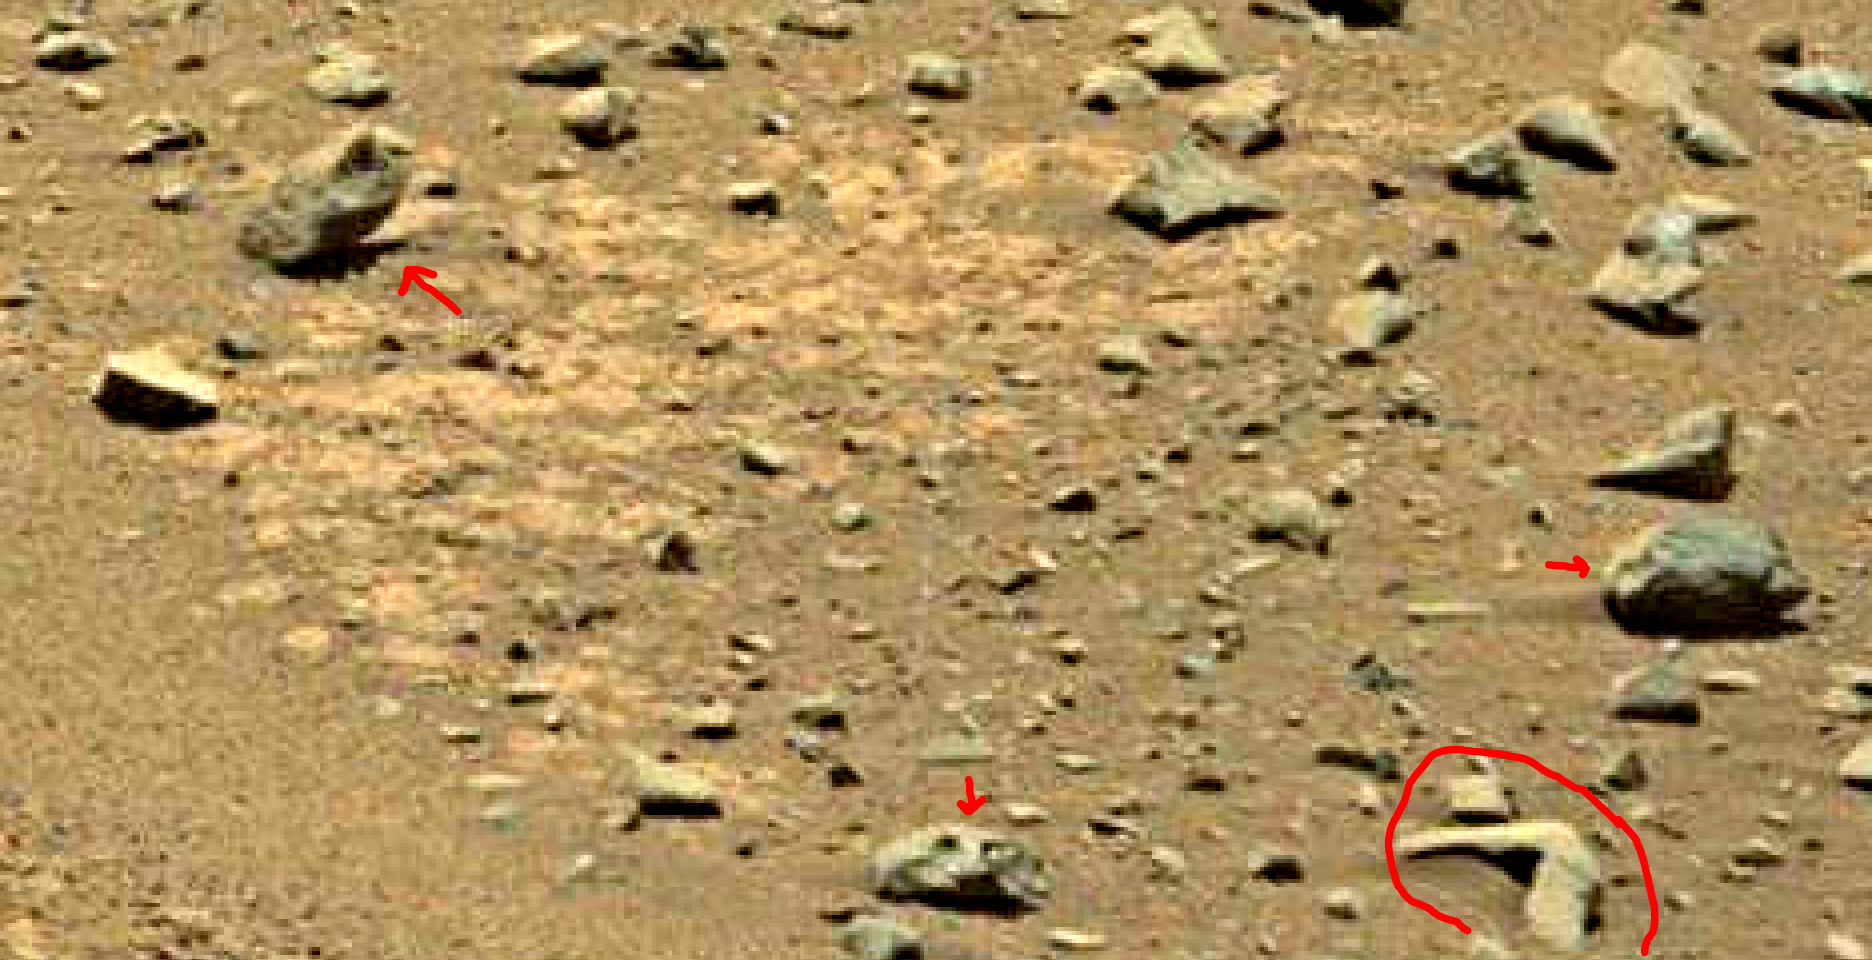 mars sol 1399 anomaly artifacts 7a was life on mars